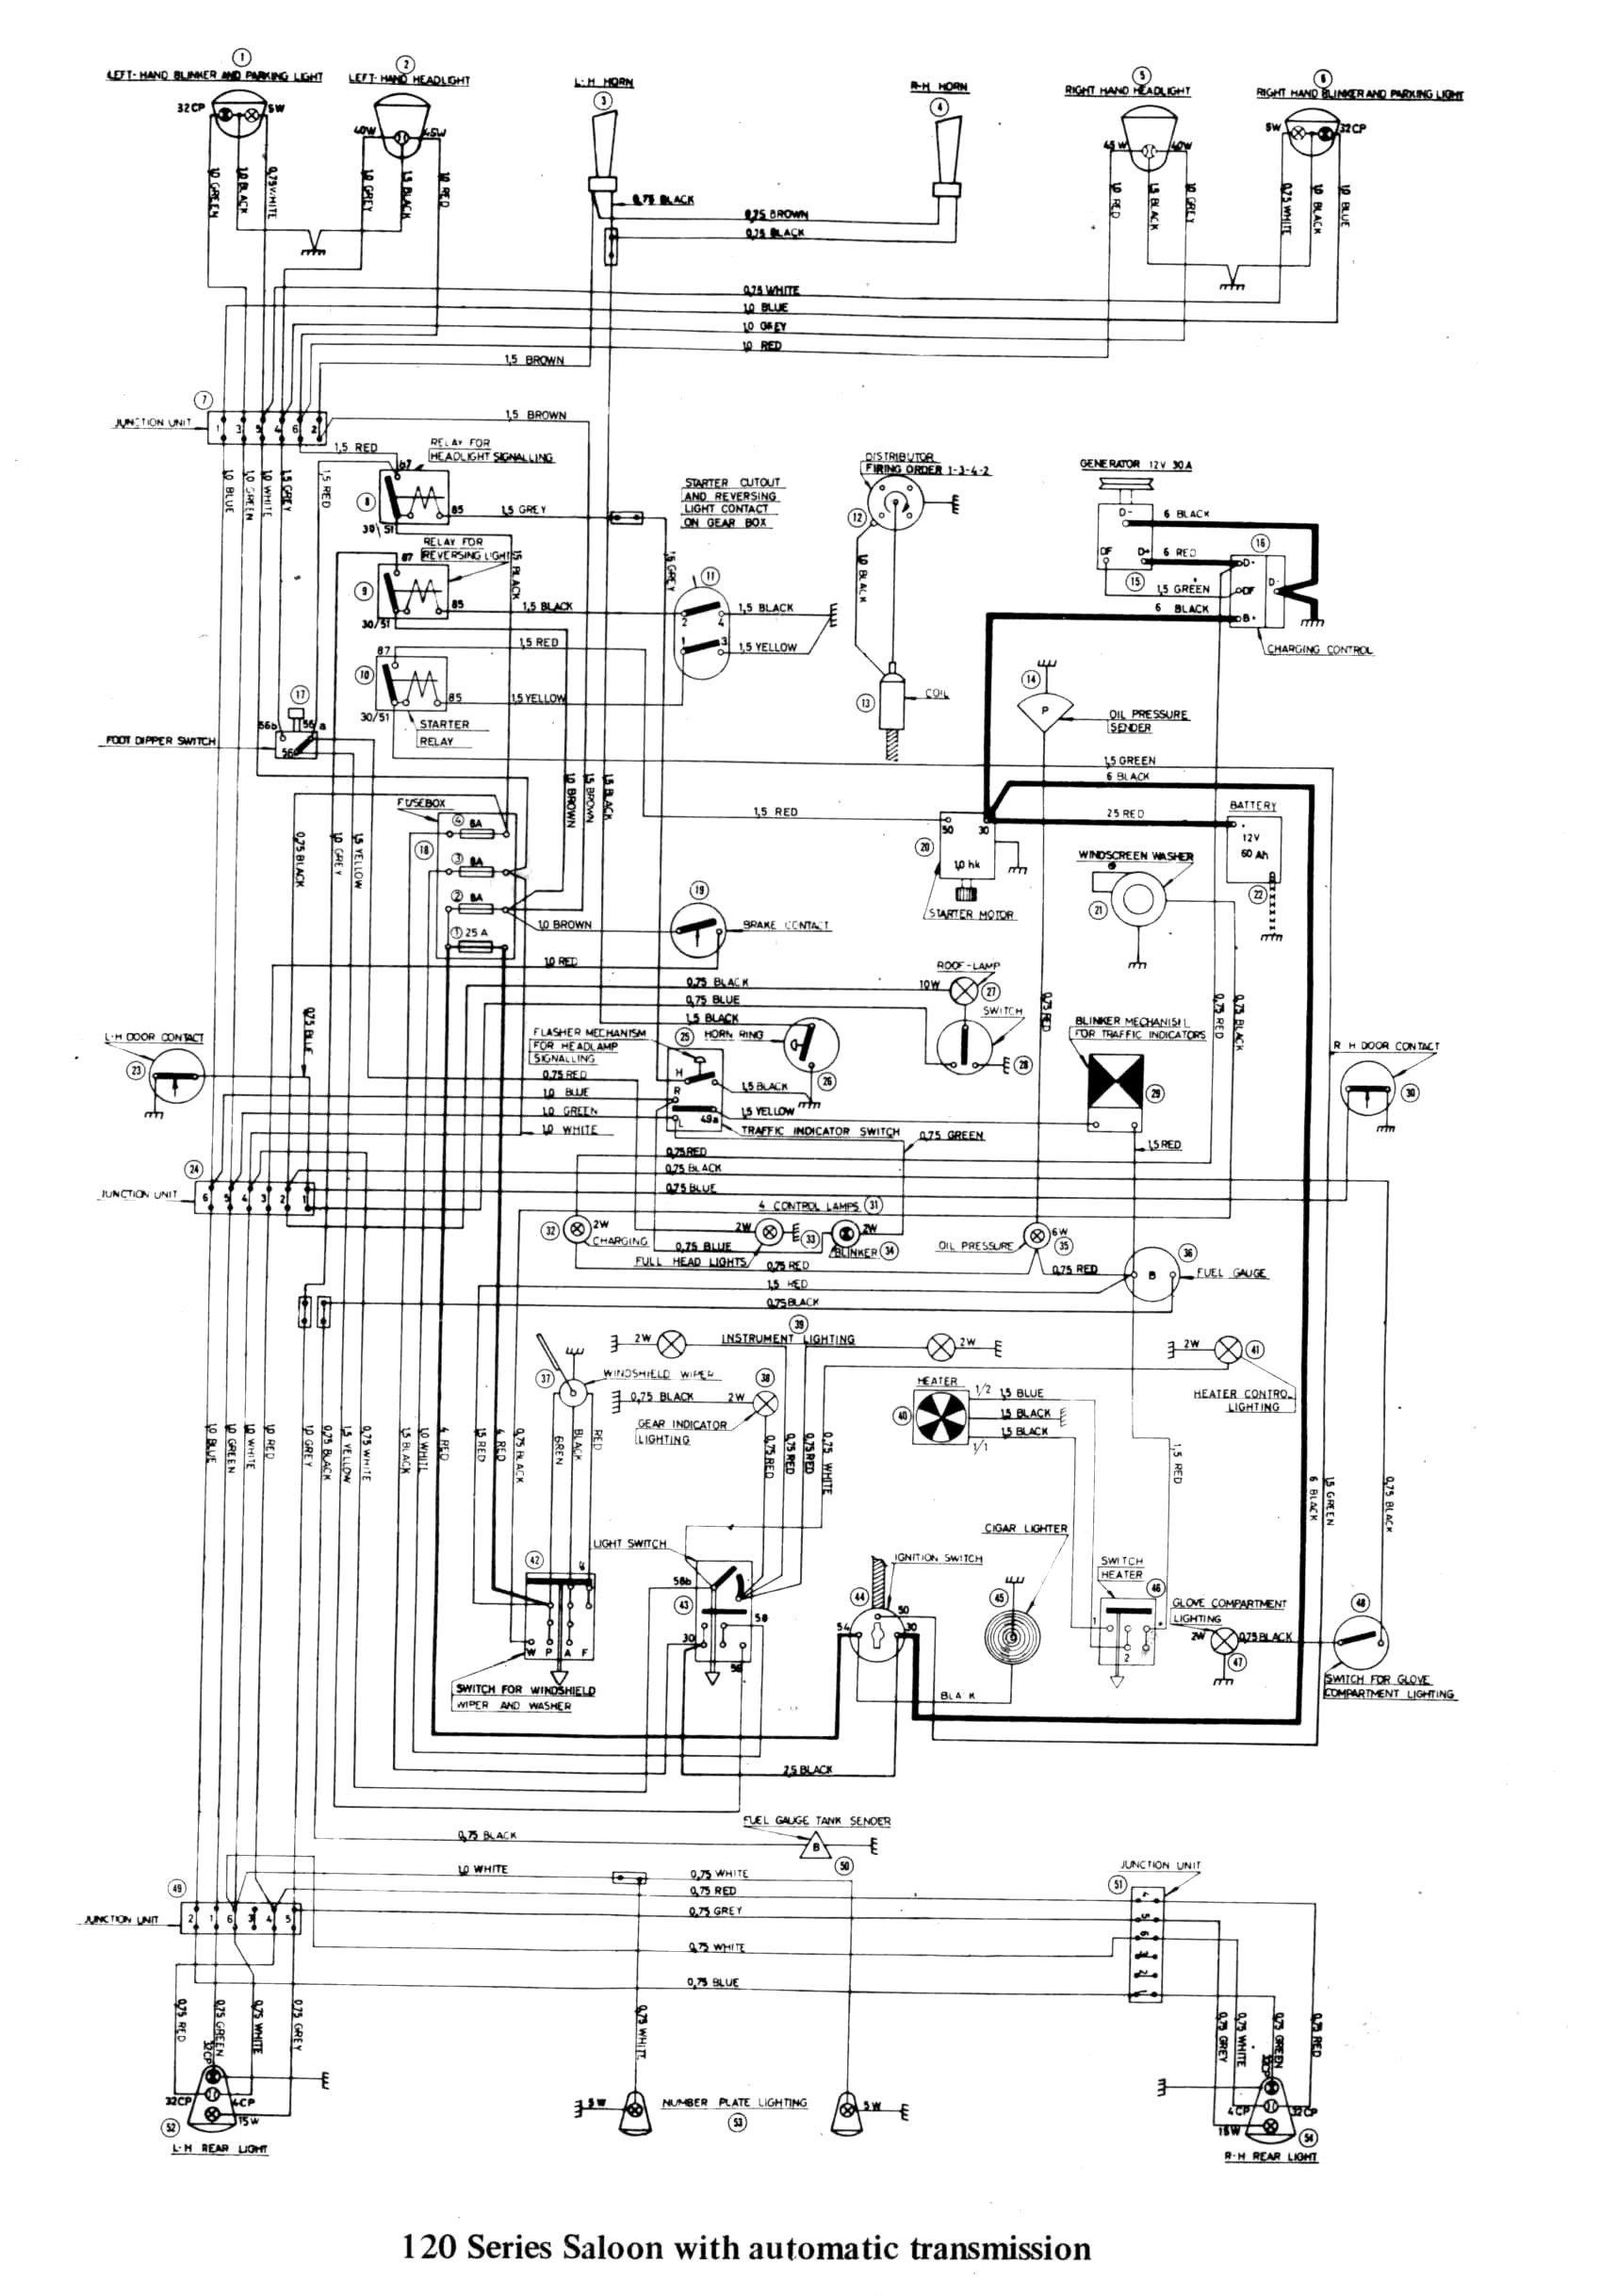 1993 ford F150 Wiring Diagram ford Truck Wiring Diagrams Free sources Of 1993 ford F150 Wiring Diagram